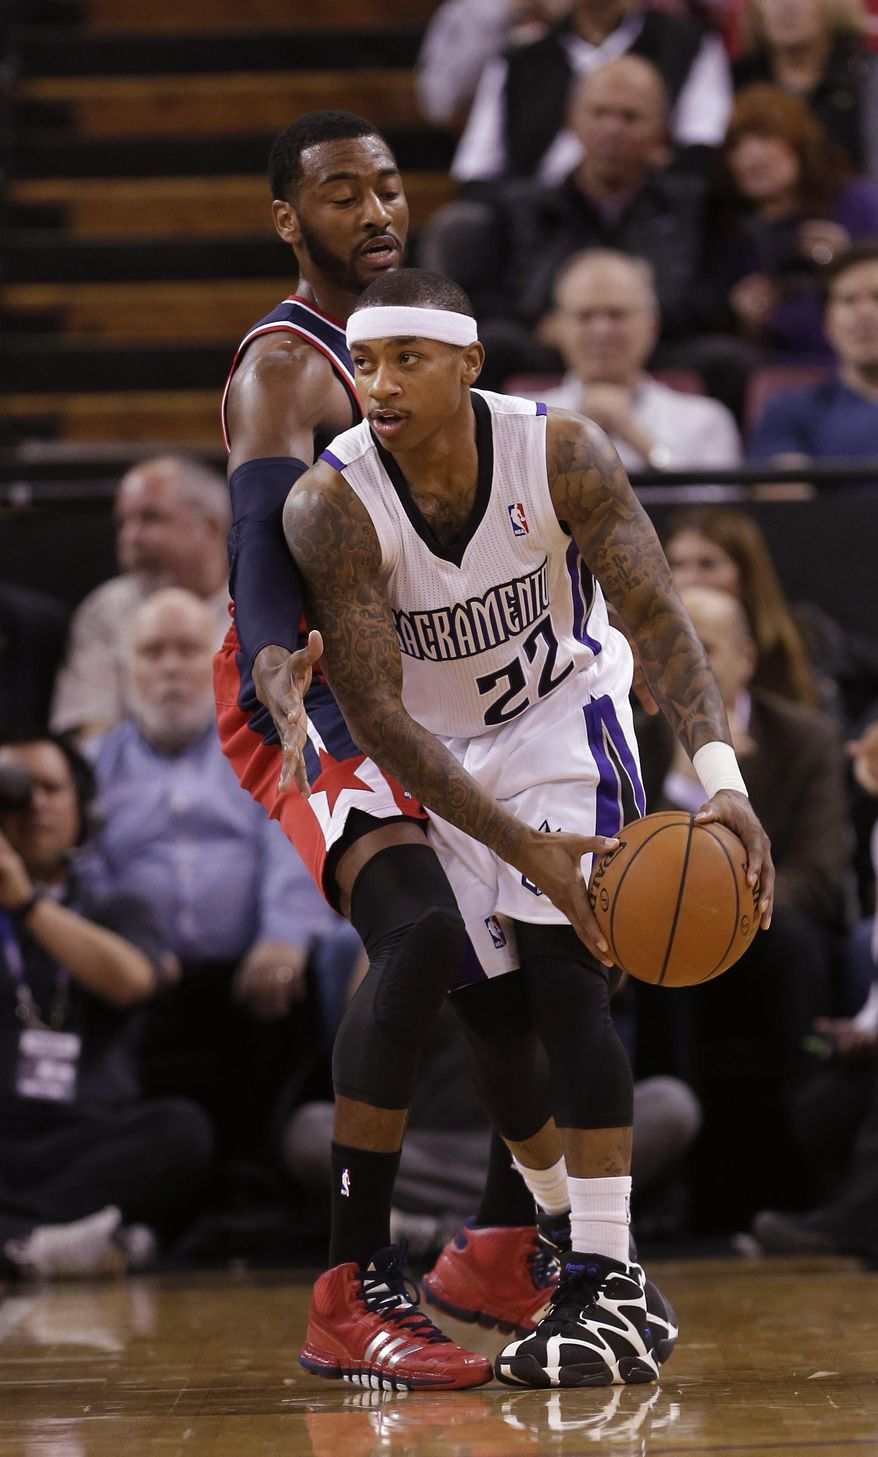 Sacramento Kings guard Isaiah Thomas, right, looks to pass against Washington Wizards guard John Wall during the first quarter of an NBA basketball game in Sacramento, Calif., Tuesday, March 18, 2014.(AP Photo/Rich Pedroncelli)